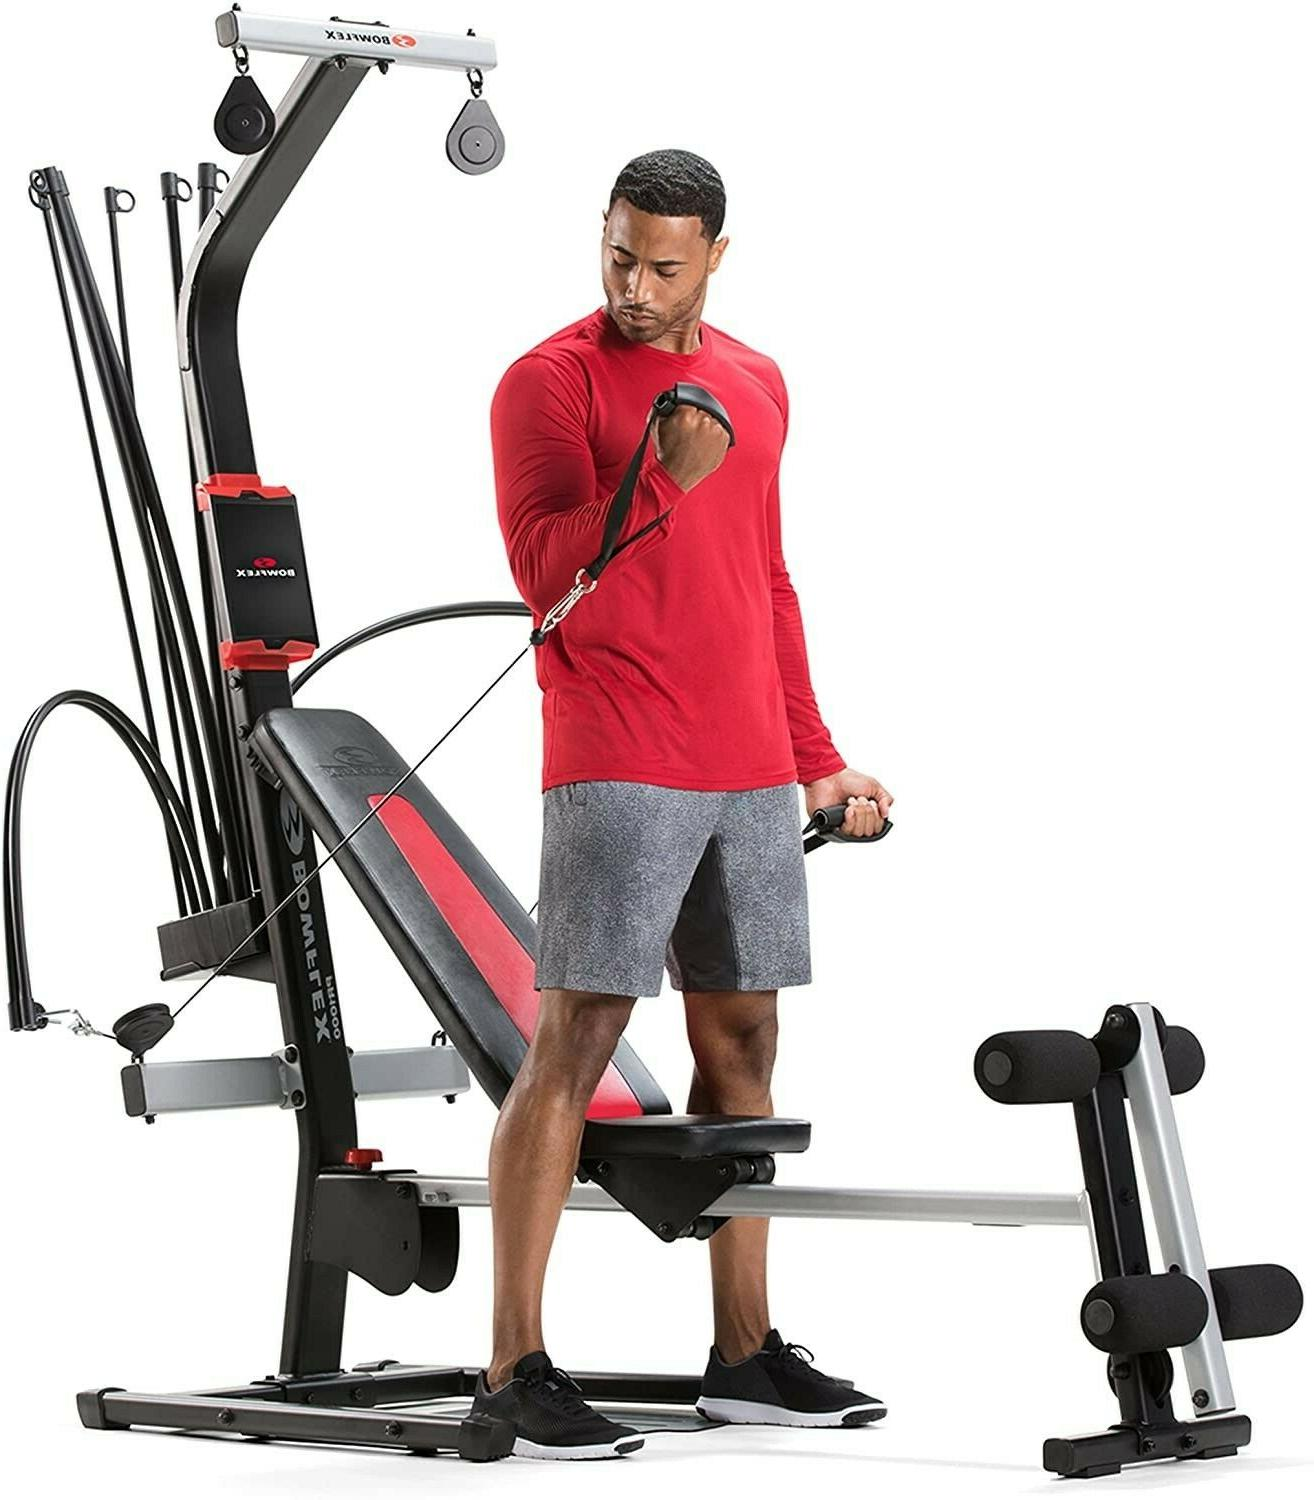 IN HAND Home Gym - Full Body FREE SHIP